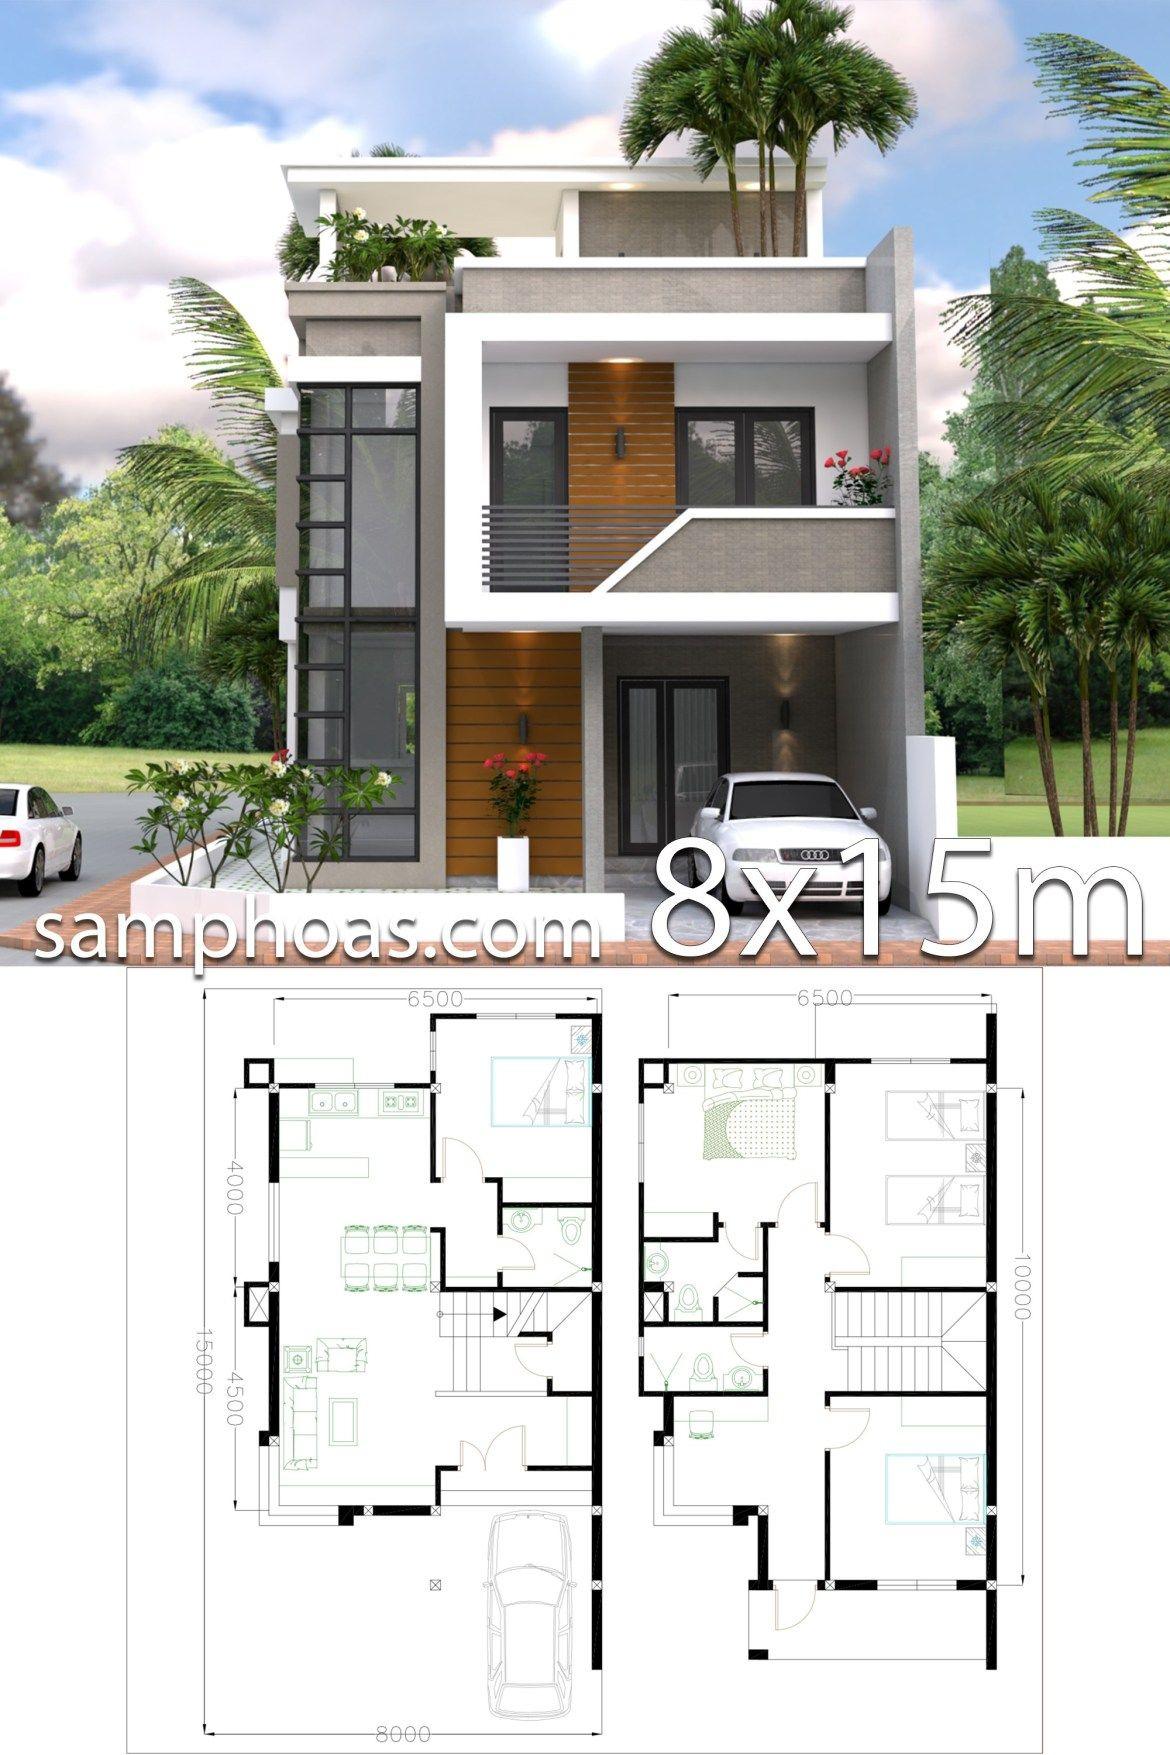 Small Minimalist House Plans Inspirational Home Design Plan 8x15m with 4 Bedrooms